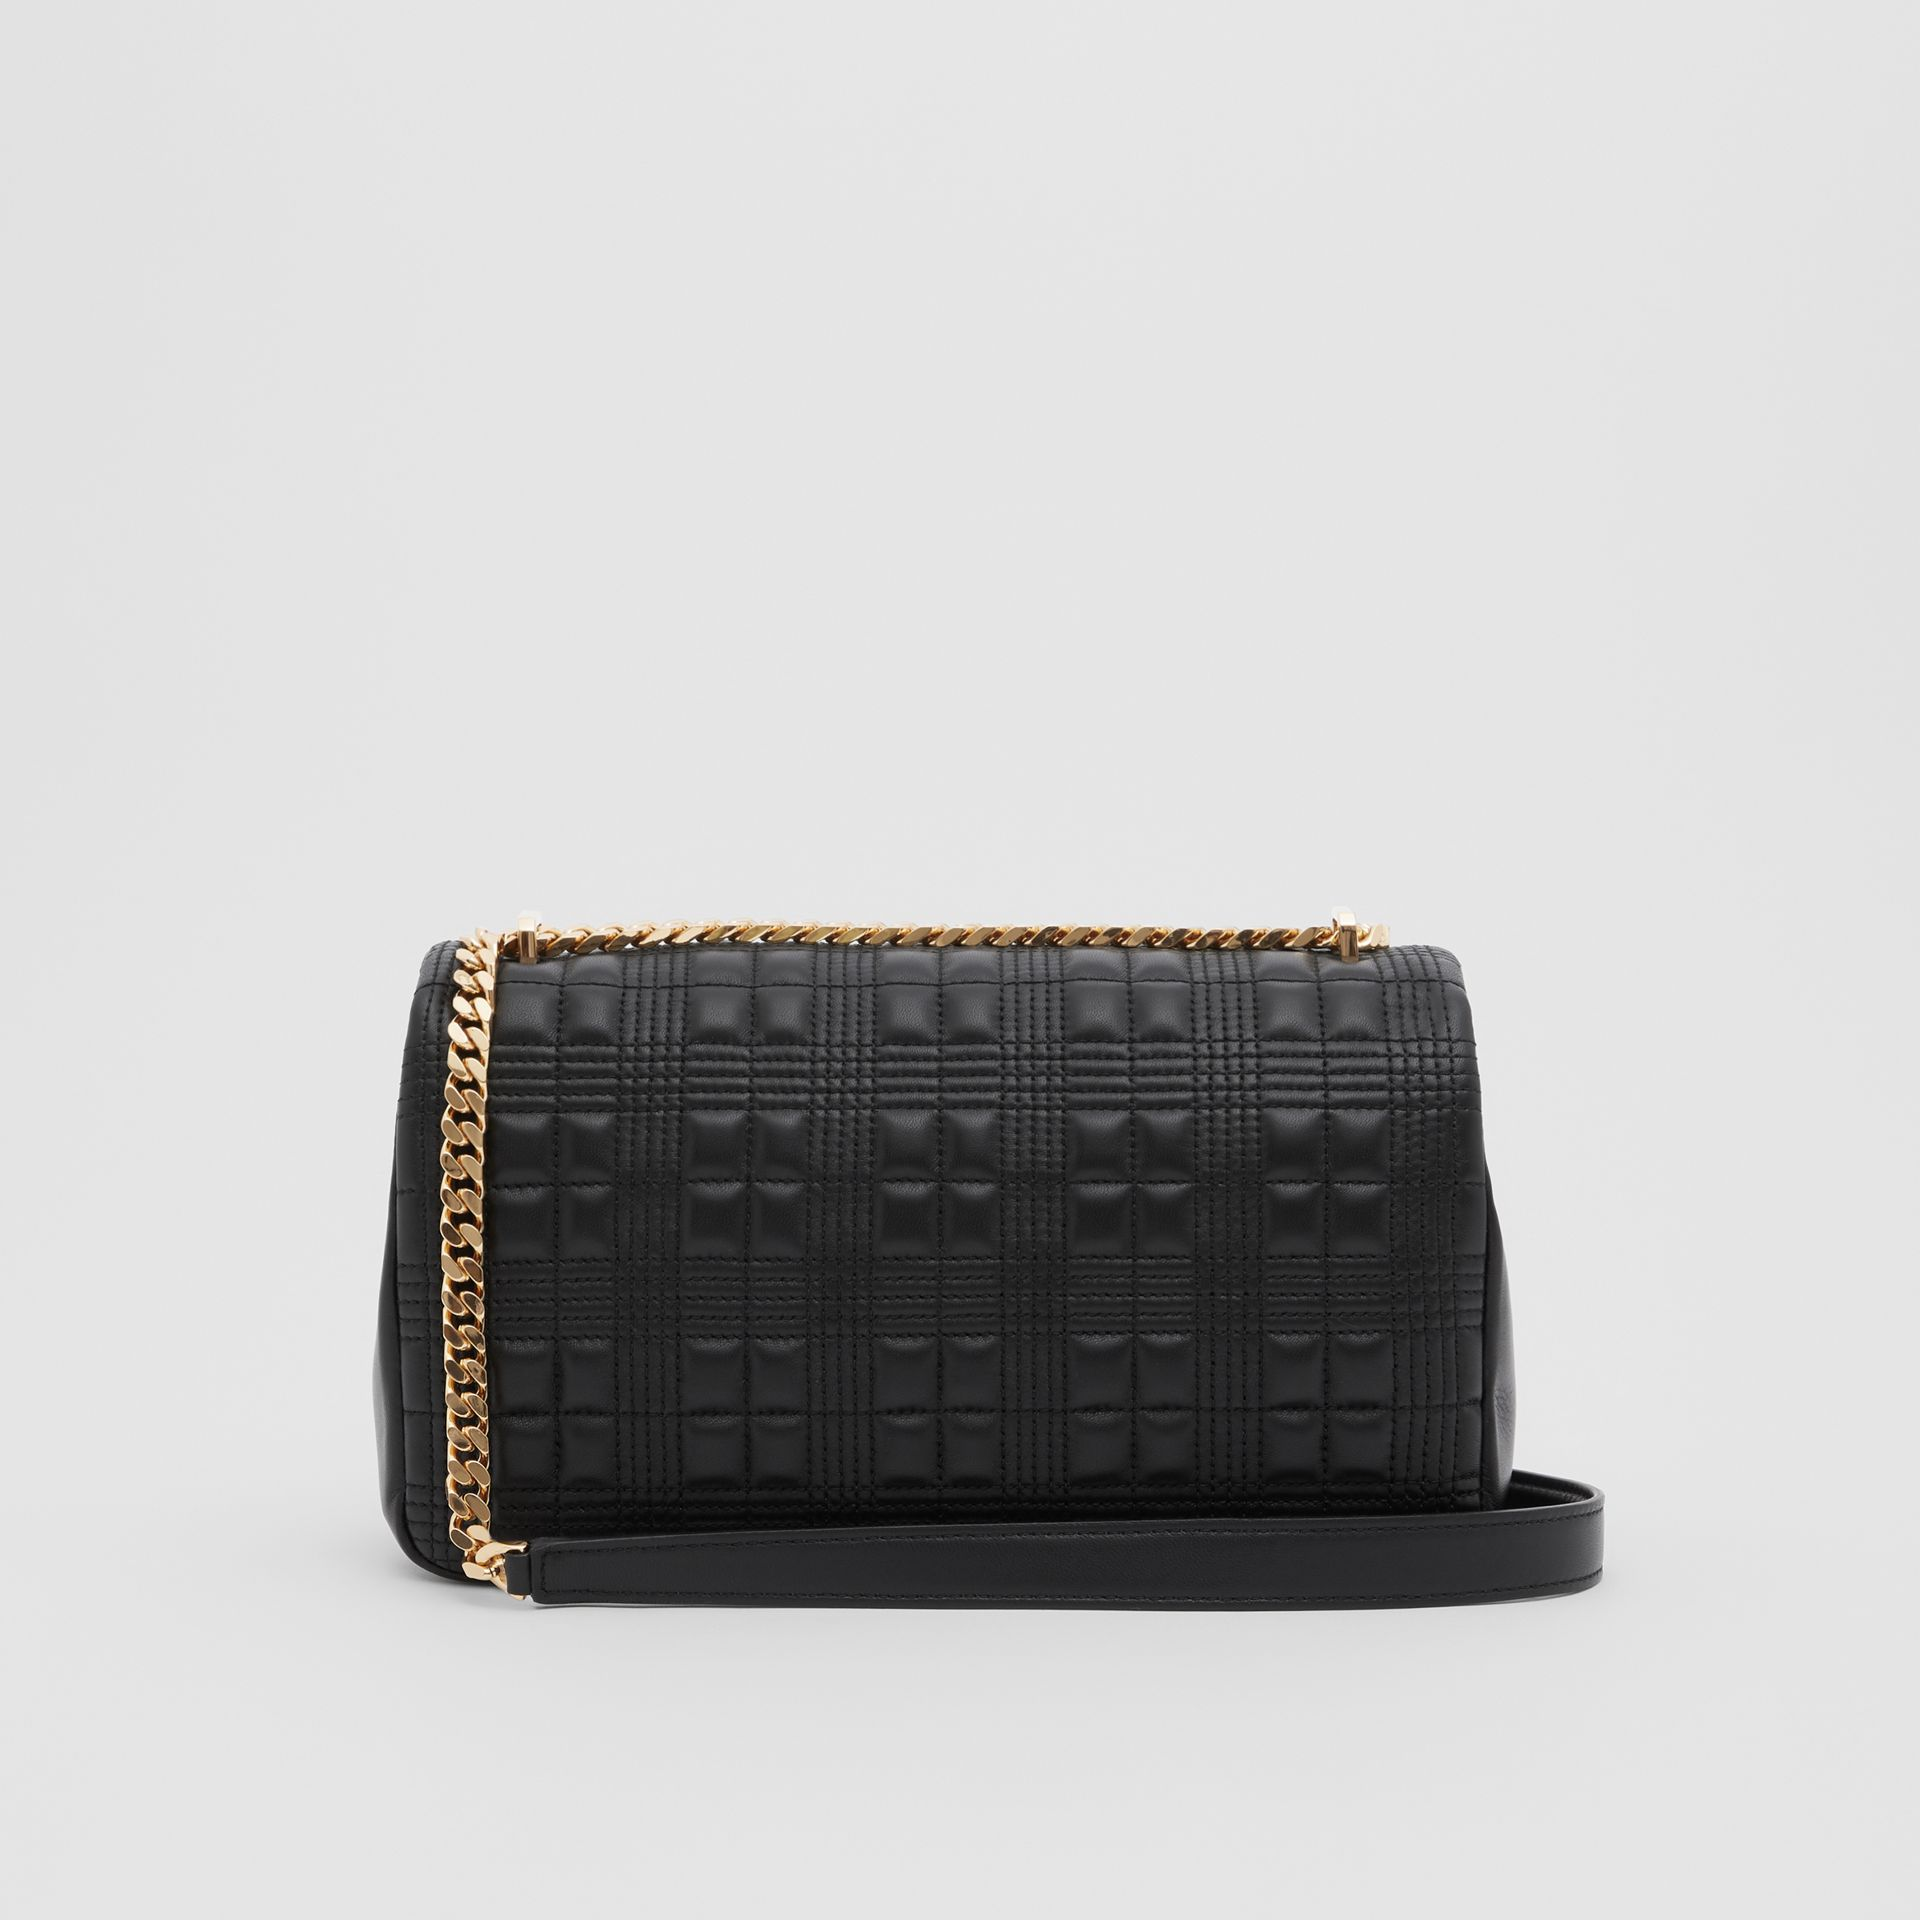 Medium Quilted Lambskin Lola Bag in Black/light Gold - Women | Burberry - gallery image 7